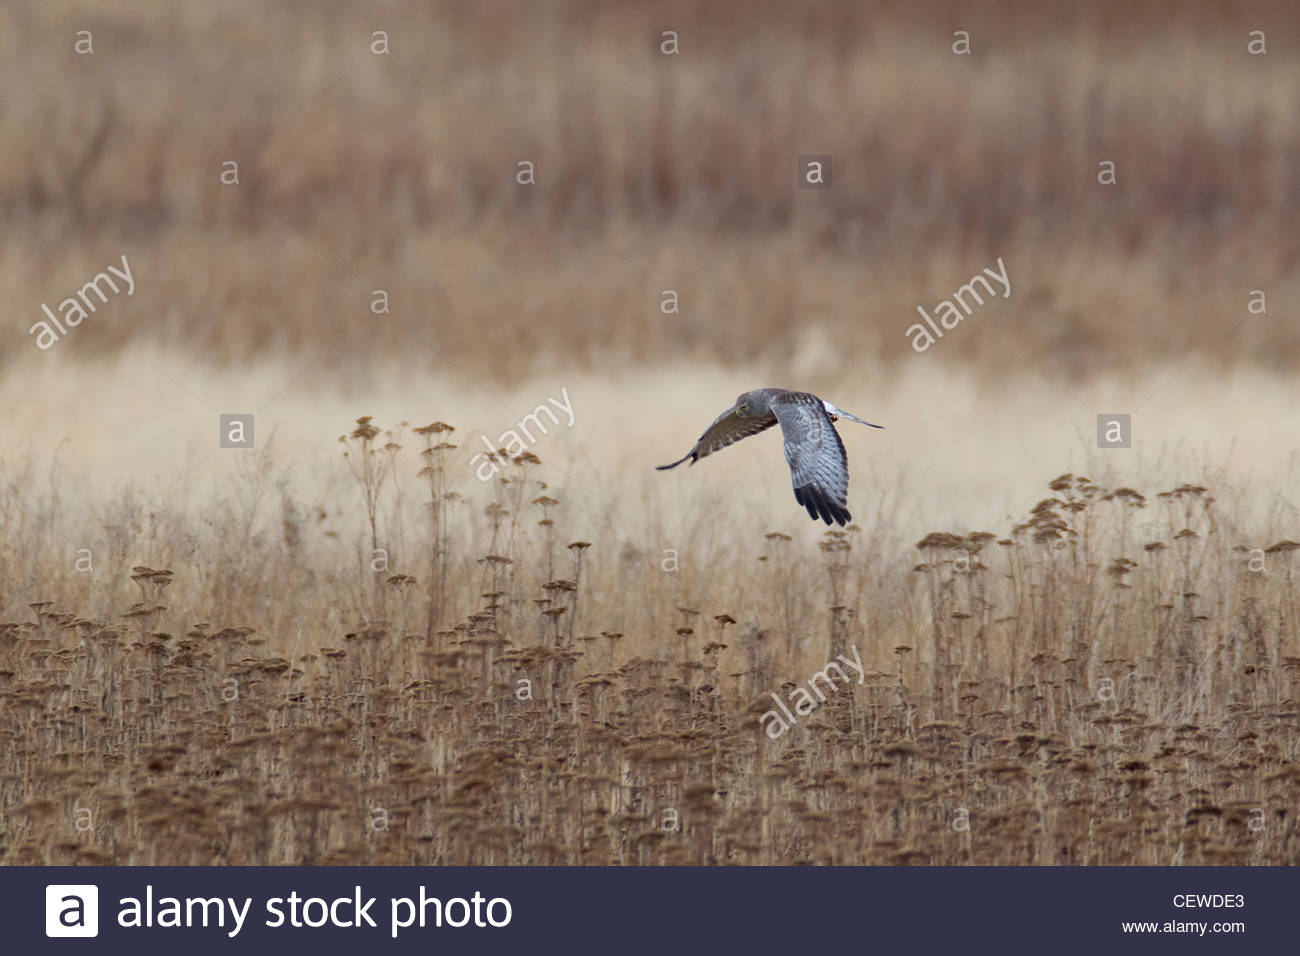 A male northern harrier (Circus cyaneus) hunts in a field near Boundary Bay in southern British Columbia, Canada. - Stock Image